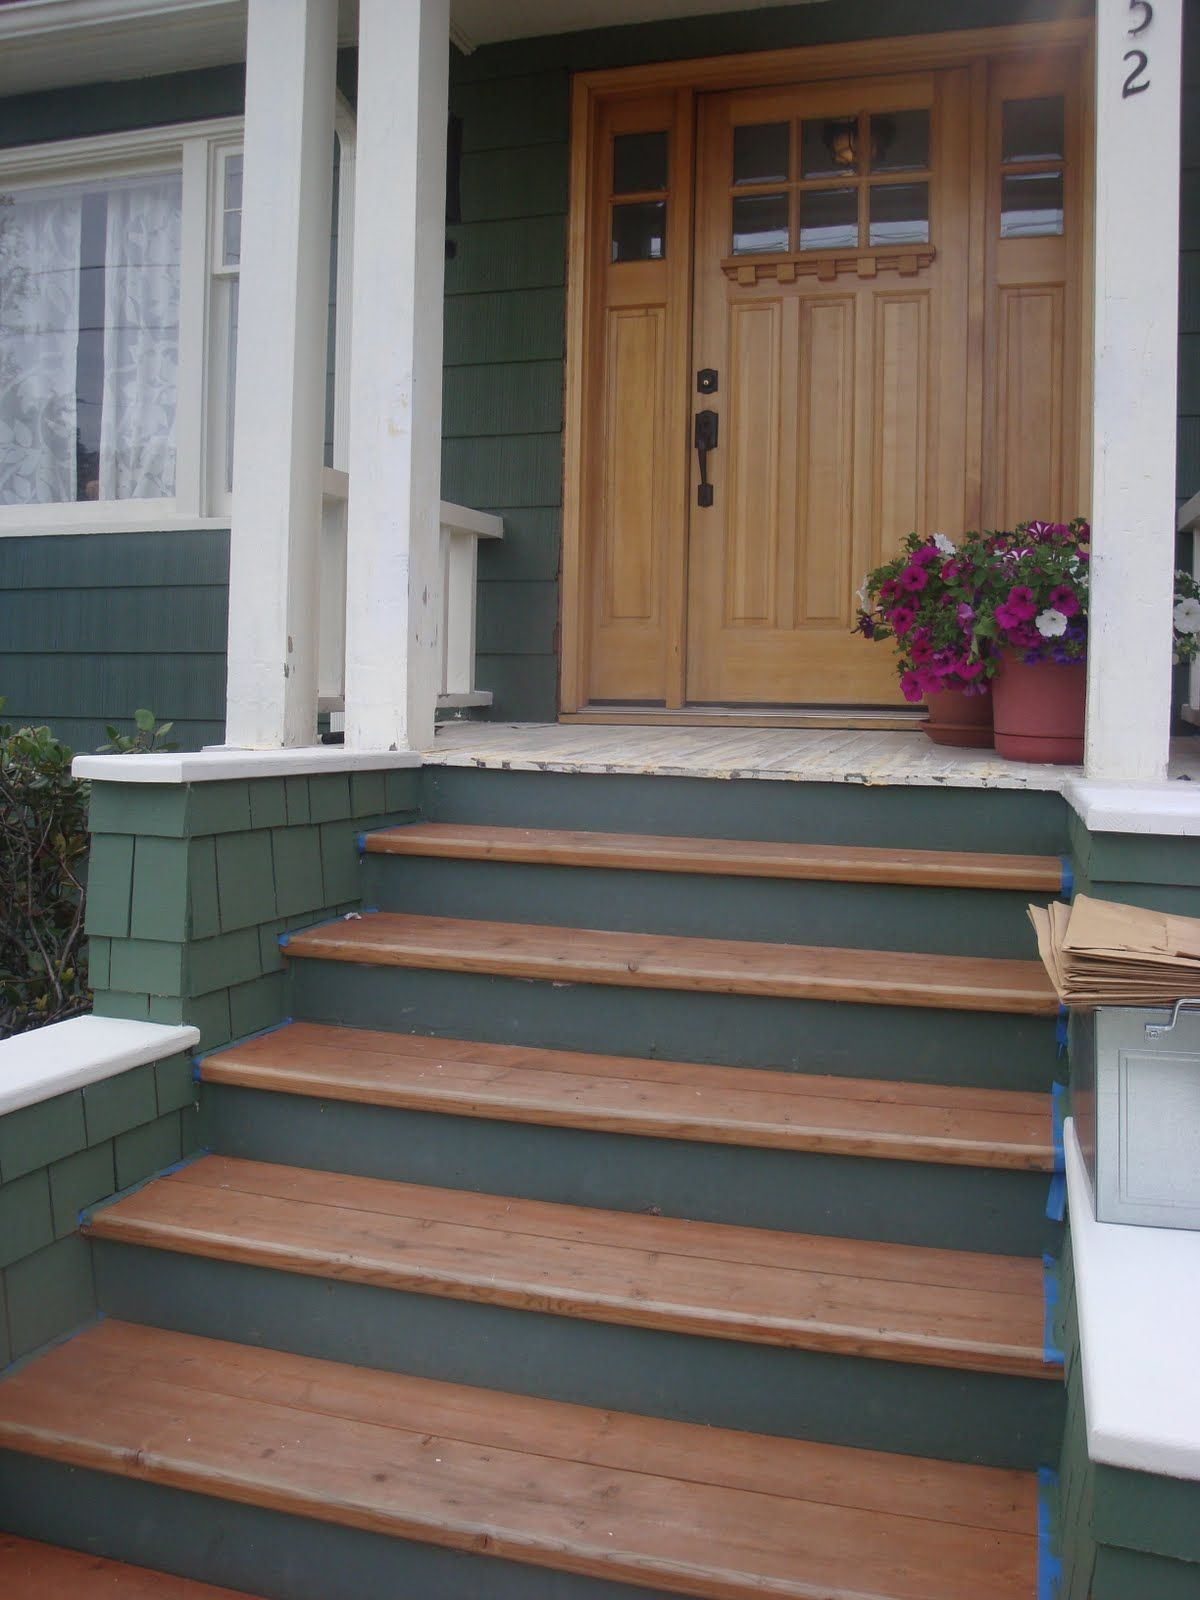 stairs   Painted stairs, House design, House front door